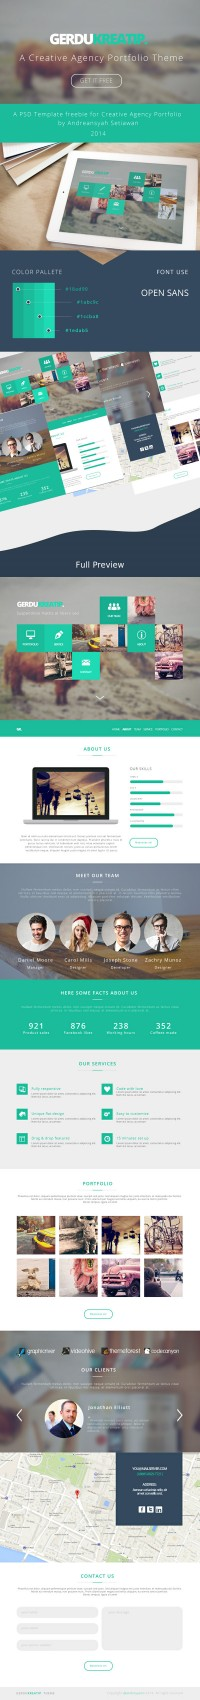 GerduKreatip: Agency Portfolio Theme | GraphicBurger | Inspiration DE